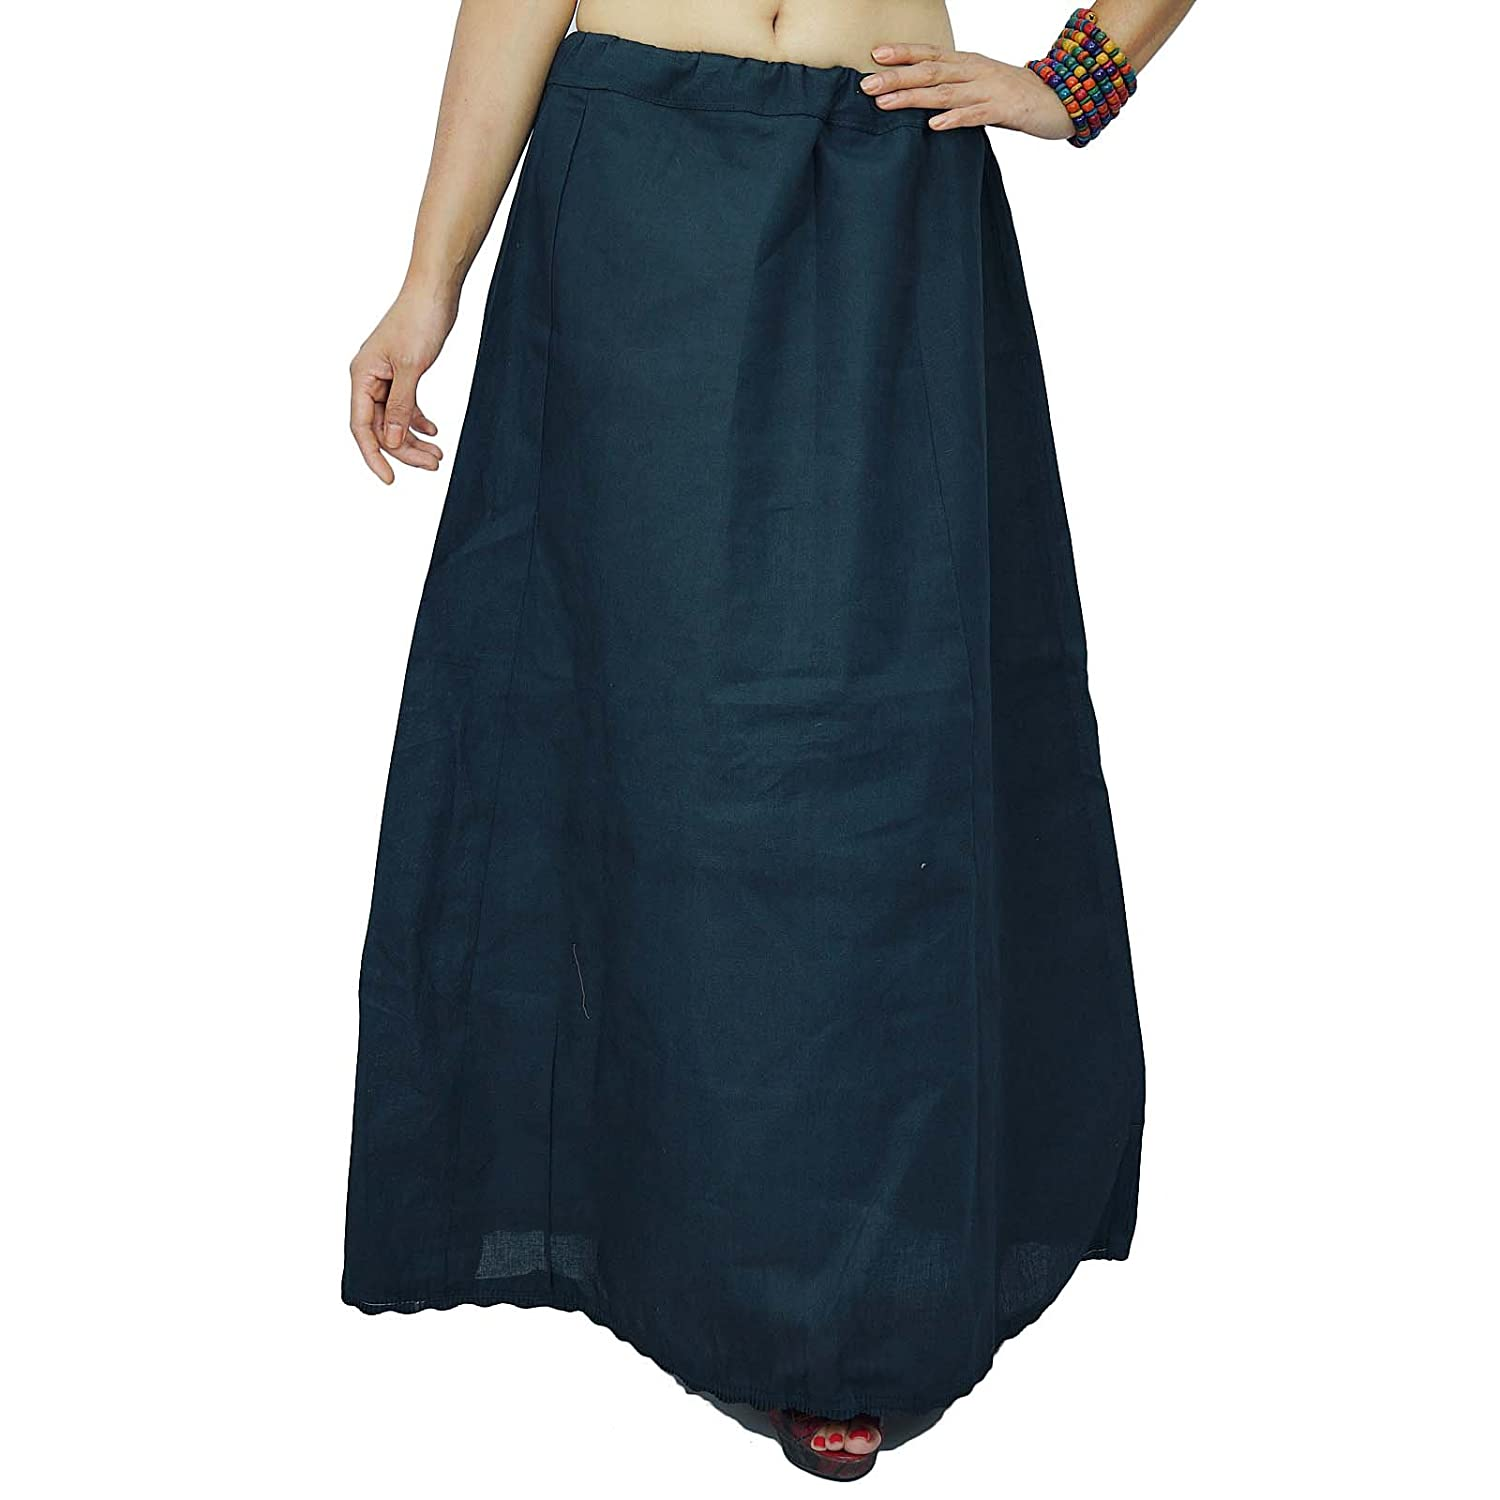 Solide Petticoatunderskirt Bollywood Indian Cotton-Futter für Sari günstig bestellen